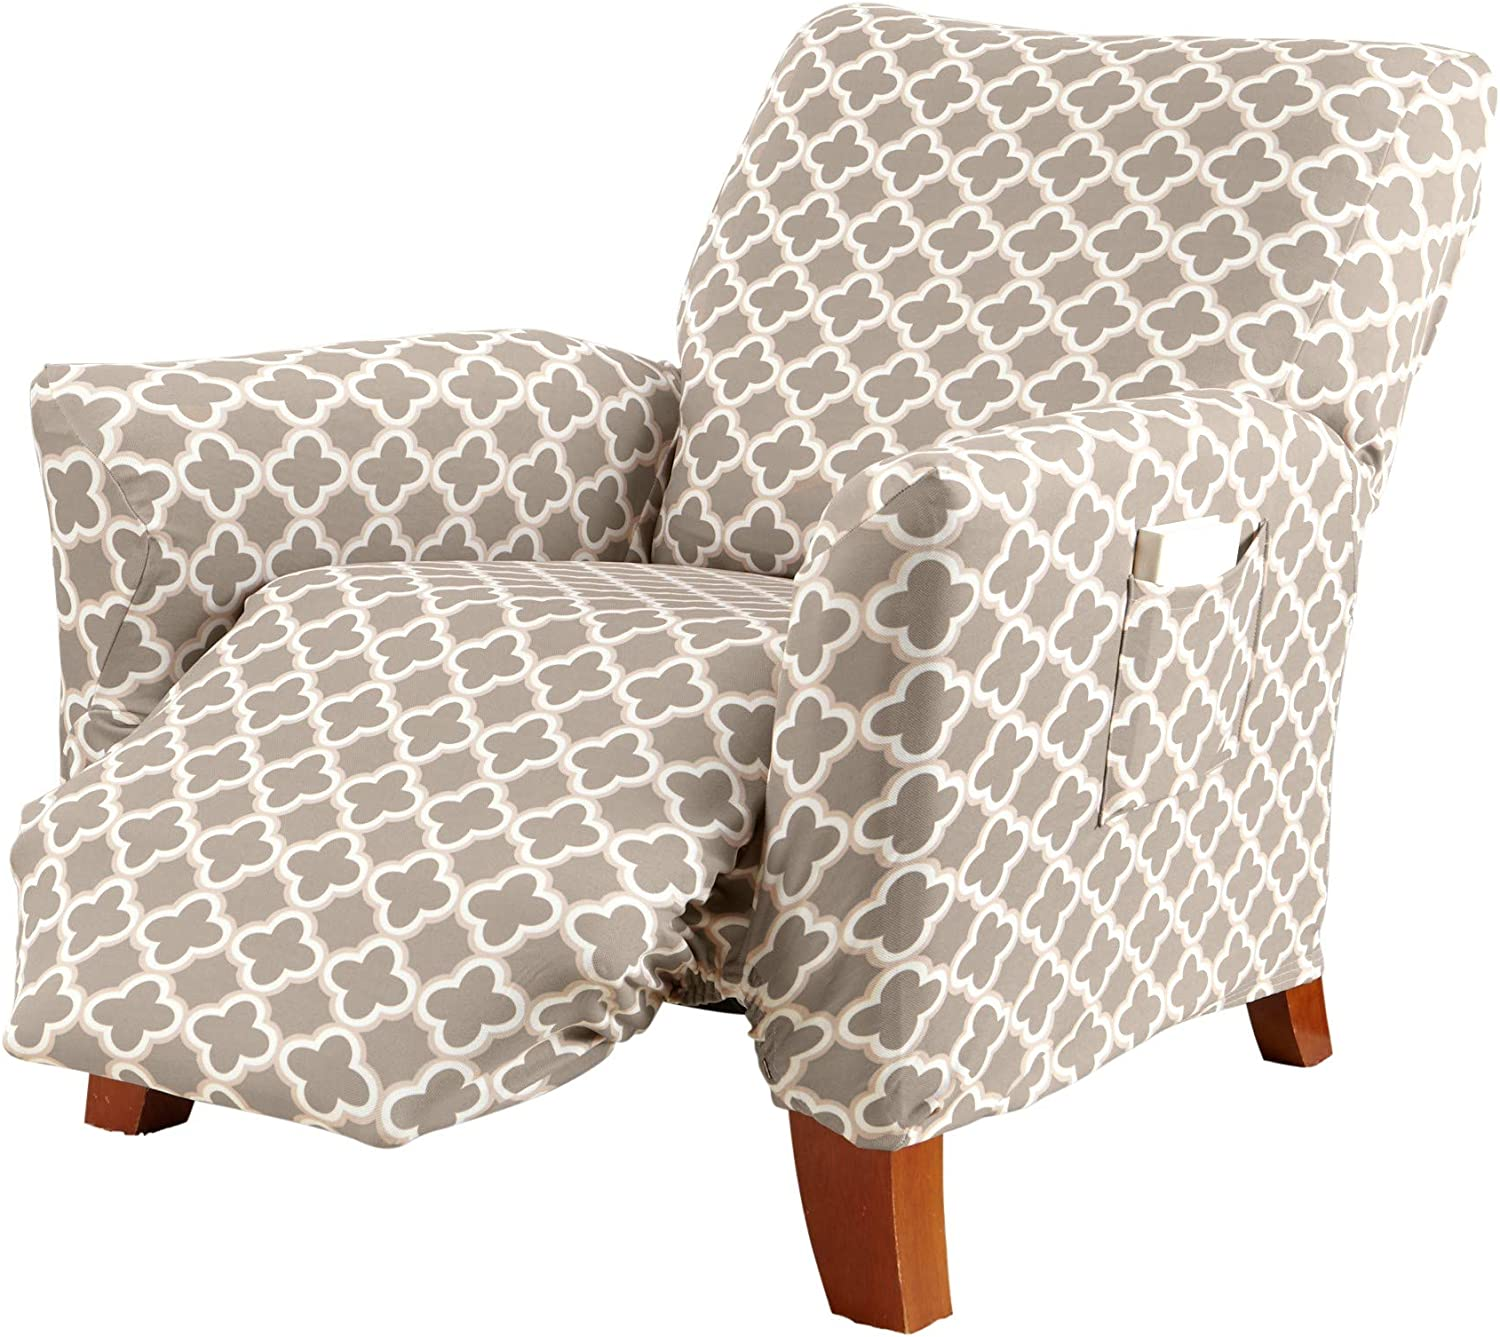 Printed Twill Recliner Slipcover. One Piece Stretch Recliner Cover. Strapless Recliner Cover for Living Room. Fallon Collection Slipcover. (Recliner, Beige)